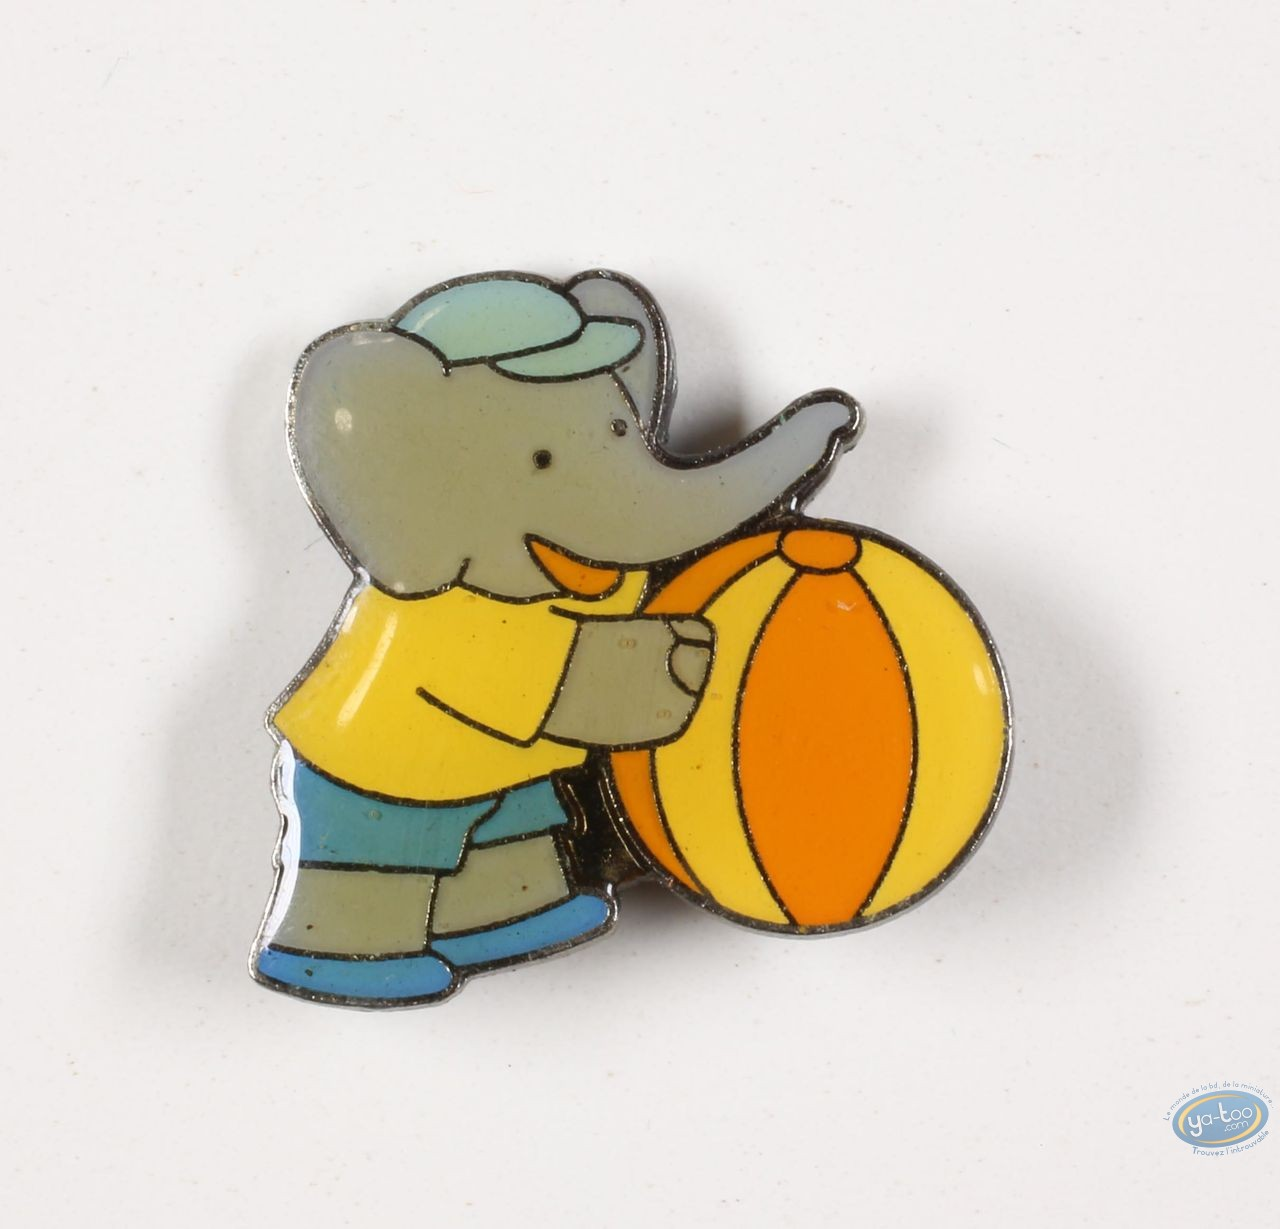 Pin's, Babar : Babar plays with a ball